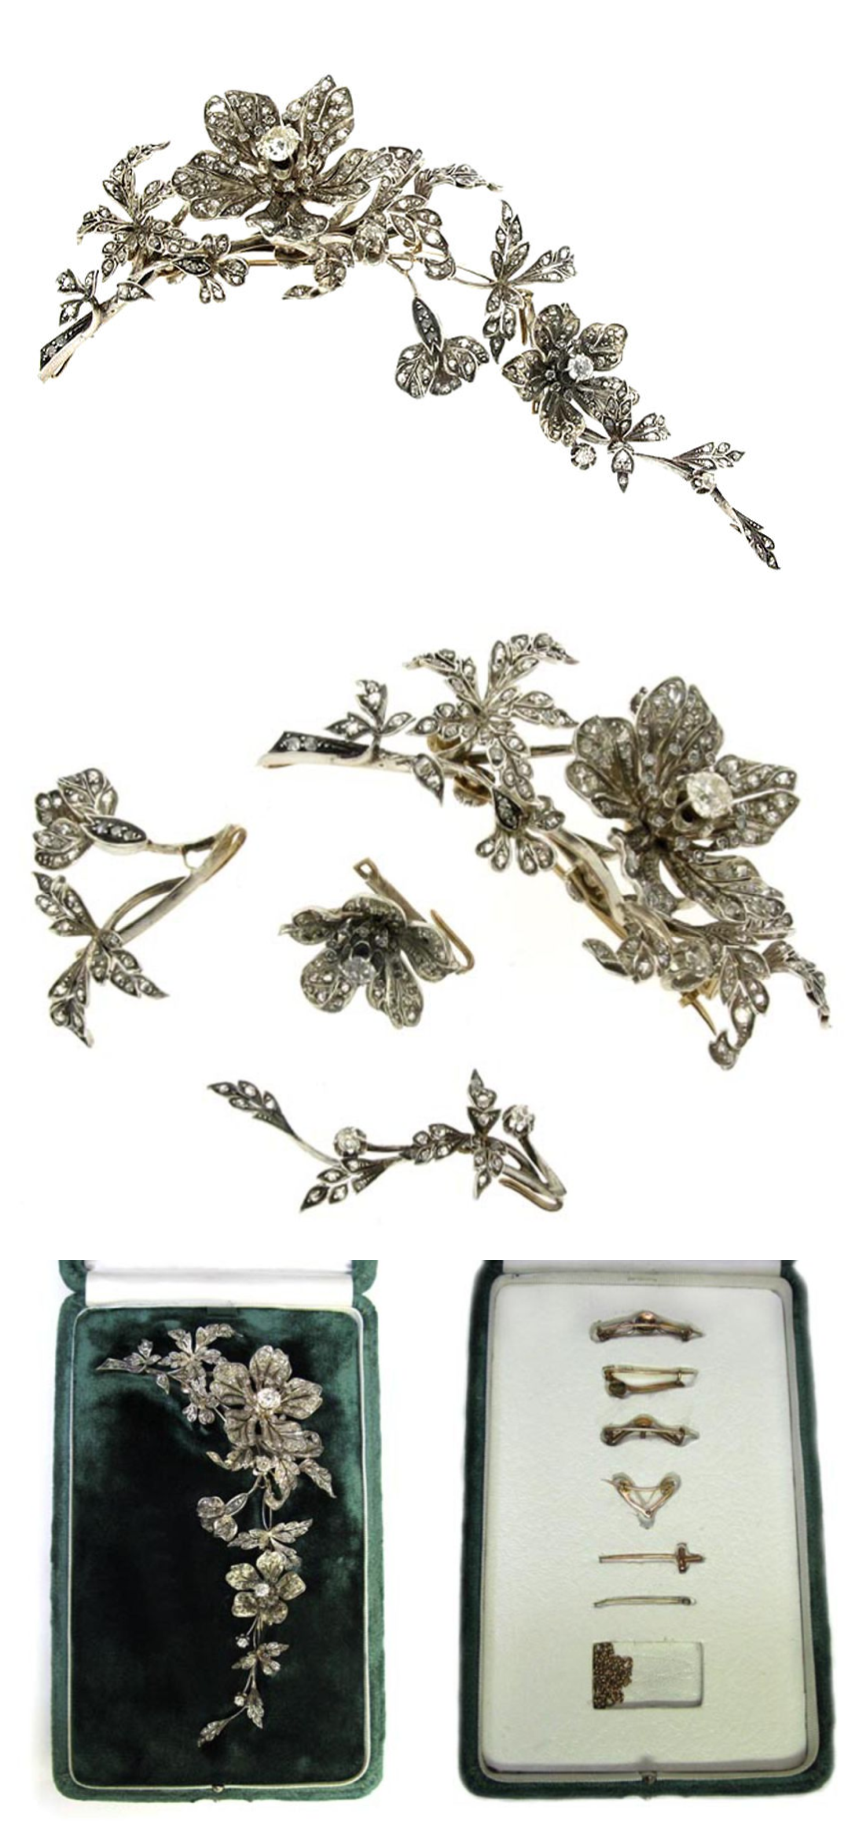 France c1850. Gold & silver floral corsage - asymmetrical spray of 2 open florettes, the larger set with 1 central cushion shaped old cut diamond, the smaller set with 1 round old cut diamond, the leaves & buds set with 258 round rose cut diamonds, all in silver topped gold. Detaches into 4 sections with original removable brooch fittings, in a fitted green velvet box with concealed compartment for additional fittings. Images by Berganza.  #AntiqueCorsageOrnament #VonGiesbrechtJewels